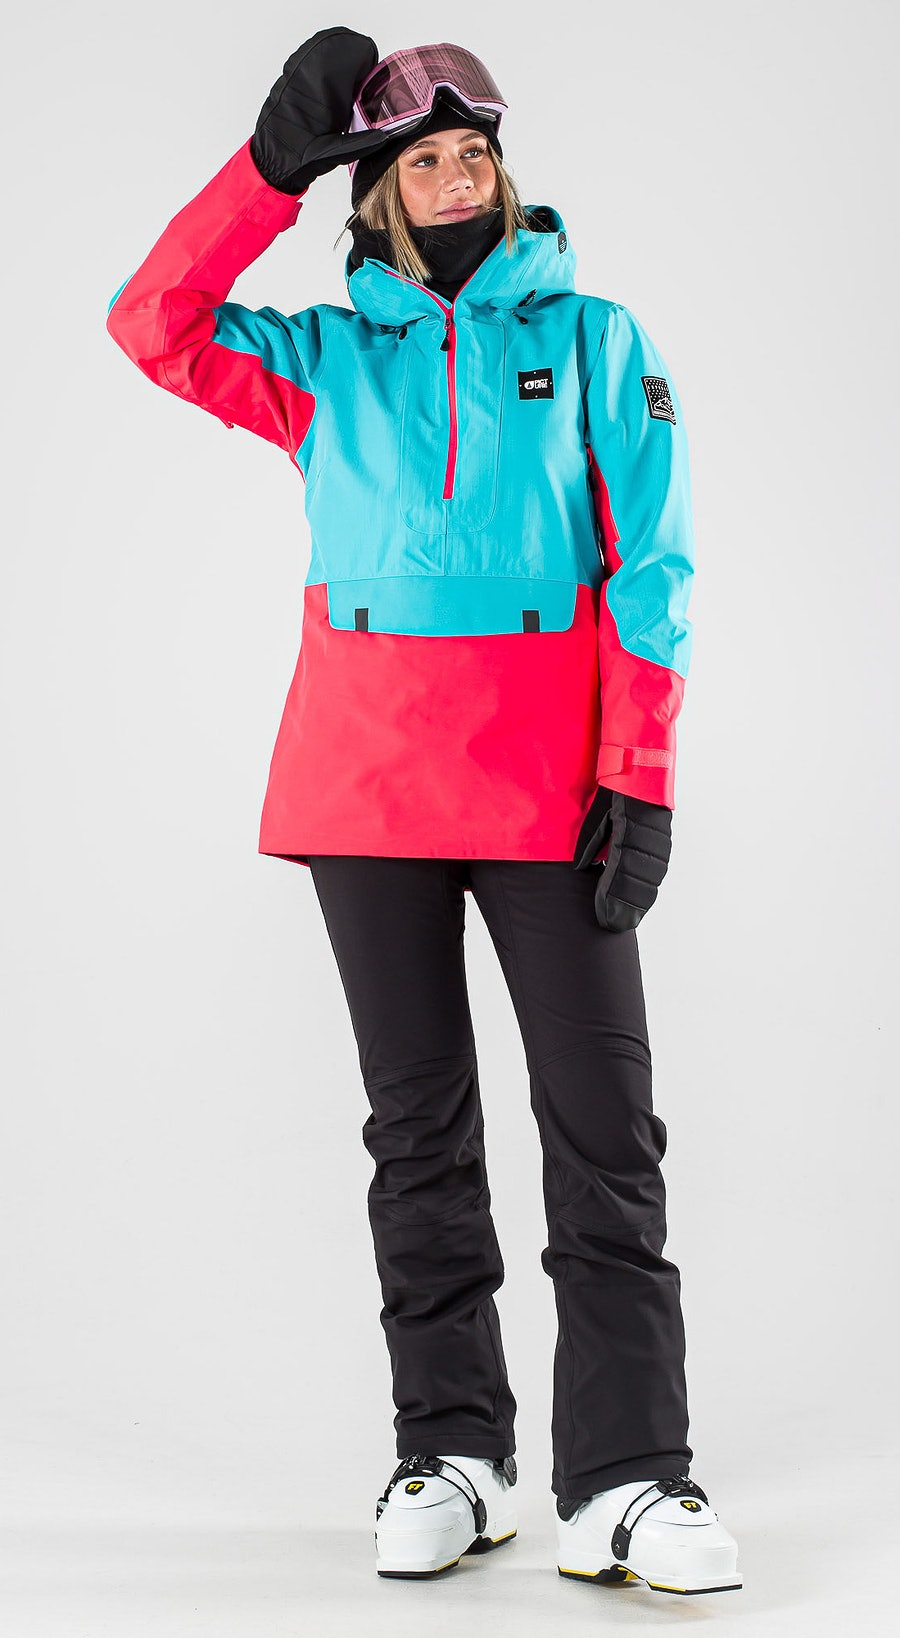 Picture Tanya Light Blue Pink Ski Clothing Multi